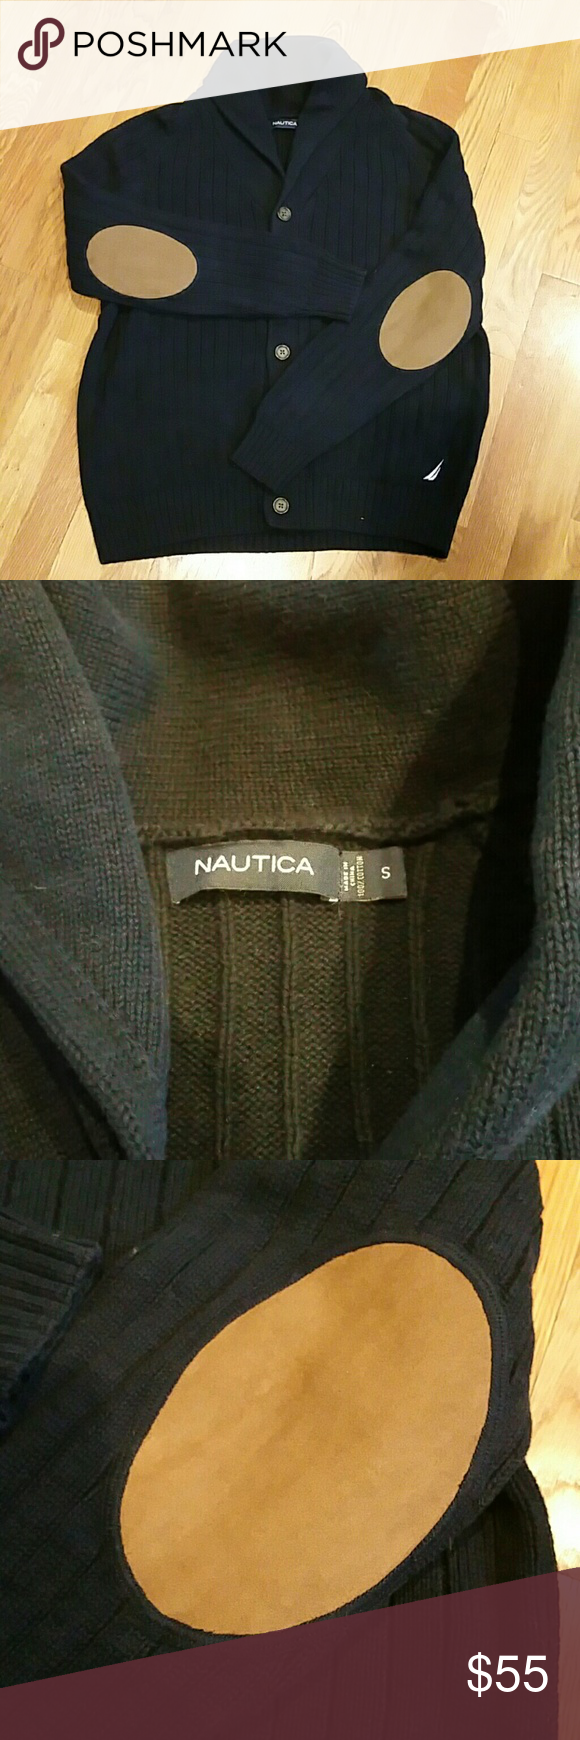 Nautica Cardigan (Mens) Nautica Cardigan  (Mens).  Size Small.  Color Navy Blue.   100% Cotton (nice and soft)  Button front,  roll collar.  Suede/leather style elbow patches.  Worn twice.  Excellent condition. Nautica Sweaters Cardigan